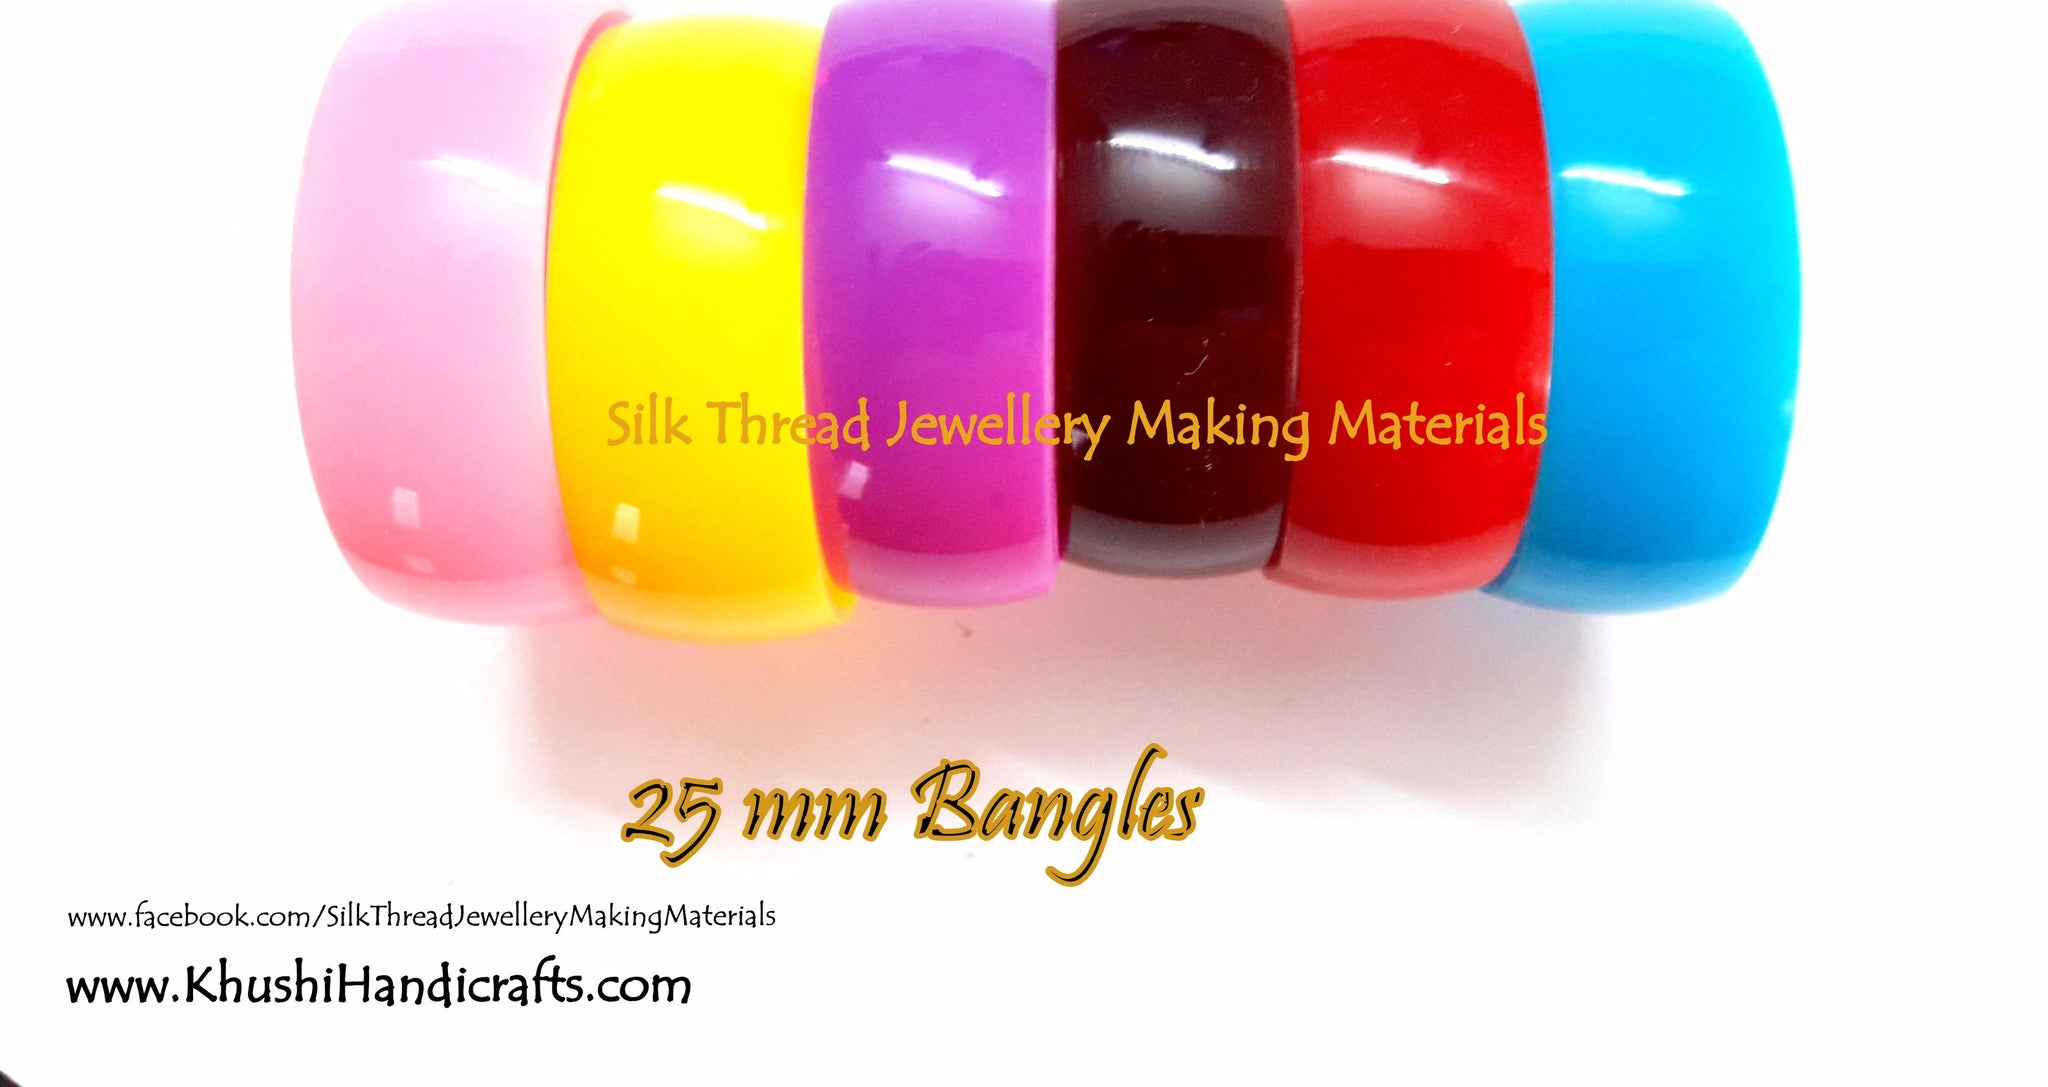 Bangle bases for Silk thread Jewellery